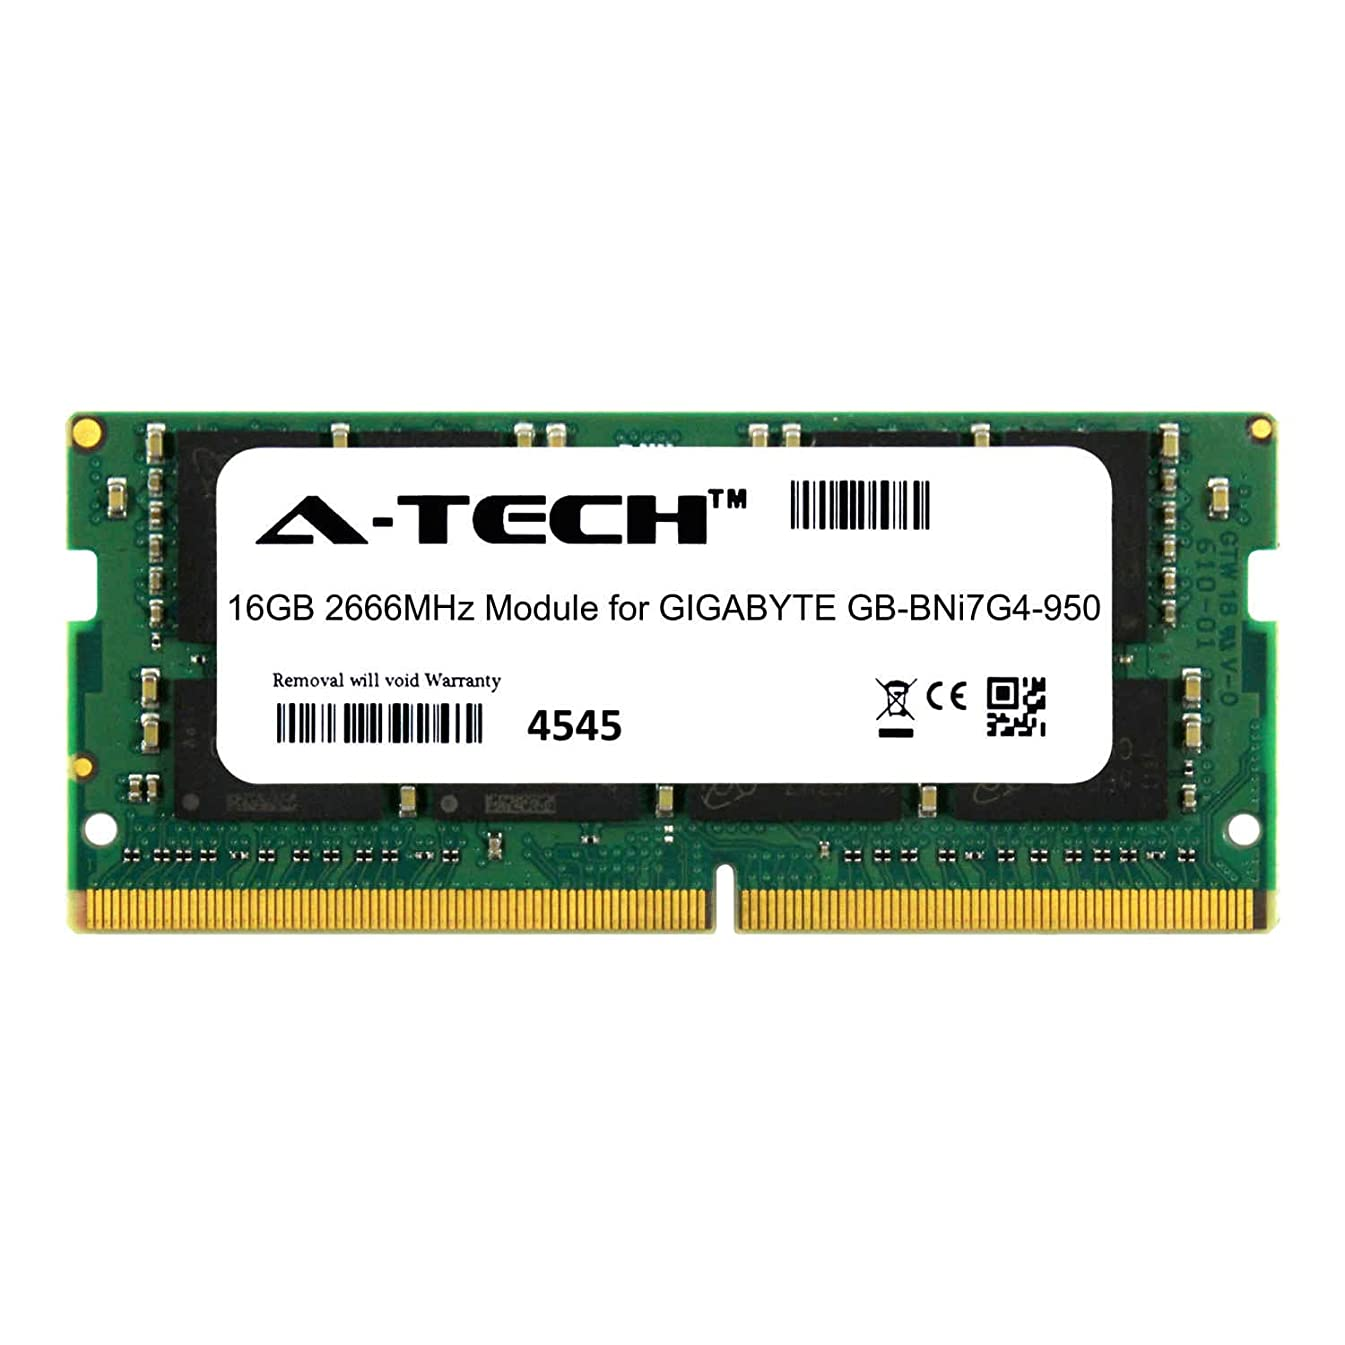 A-Tech 16GB Module for GIGABYTE GB-BNi7G4-950 Laptop & Notebook Compatible DDR4 2666Mhz Memory Ram (ATMS385196A25832X1)